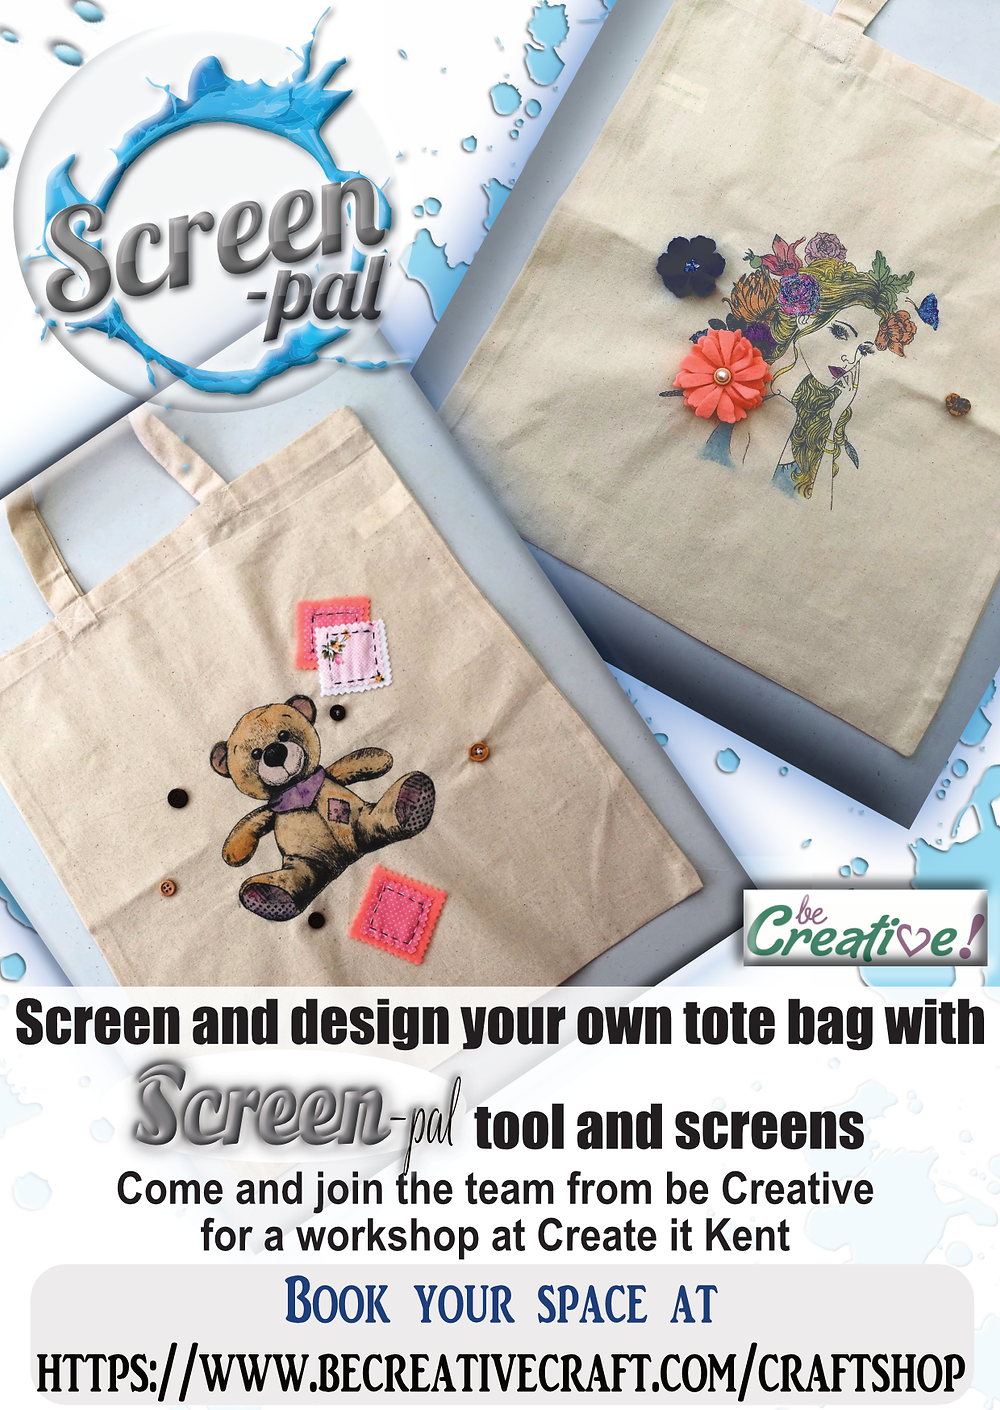 Screen Print tote bag with Screen-pal